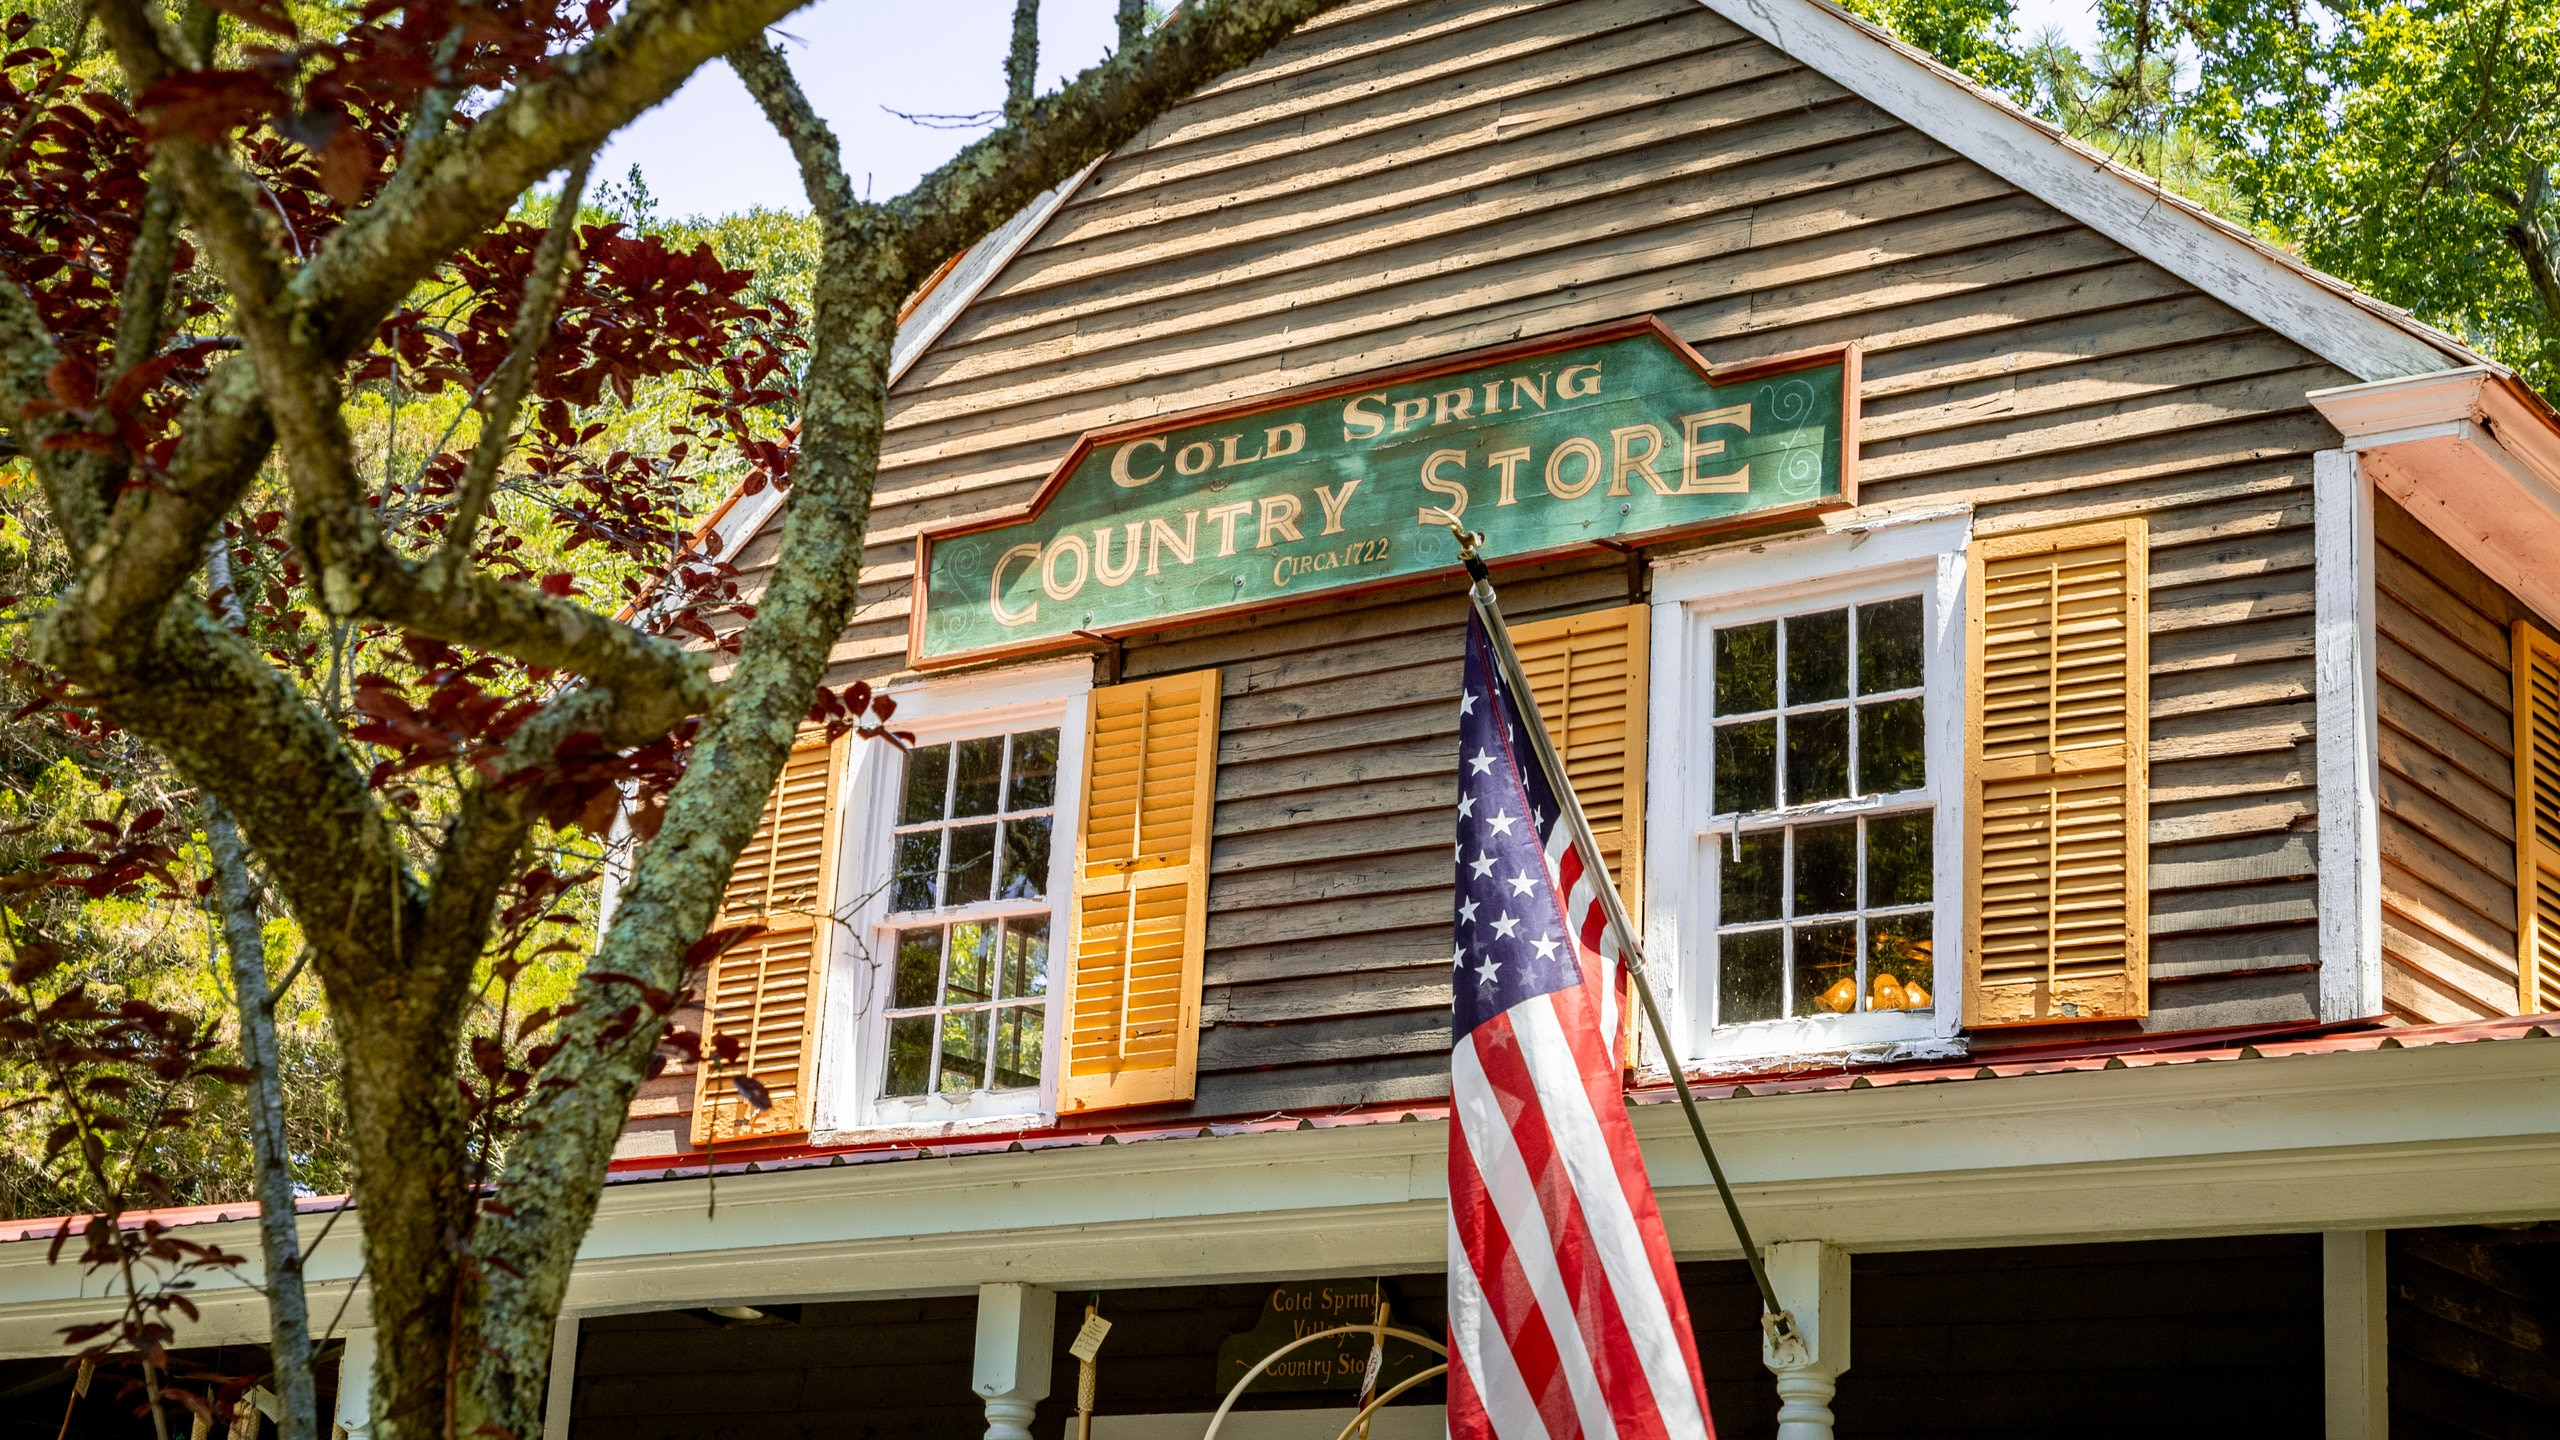 Historic Cold Spring Village, Lower Township, New Jersey, United States of America